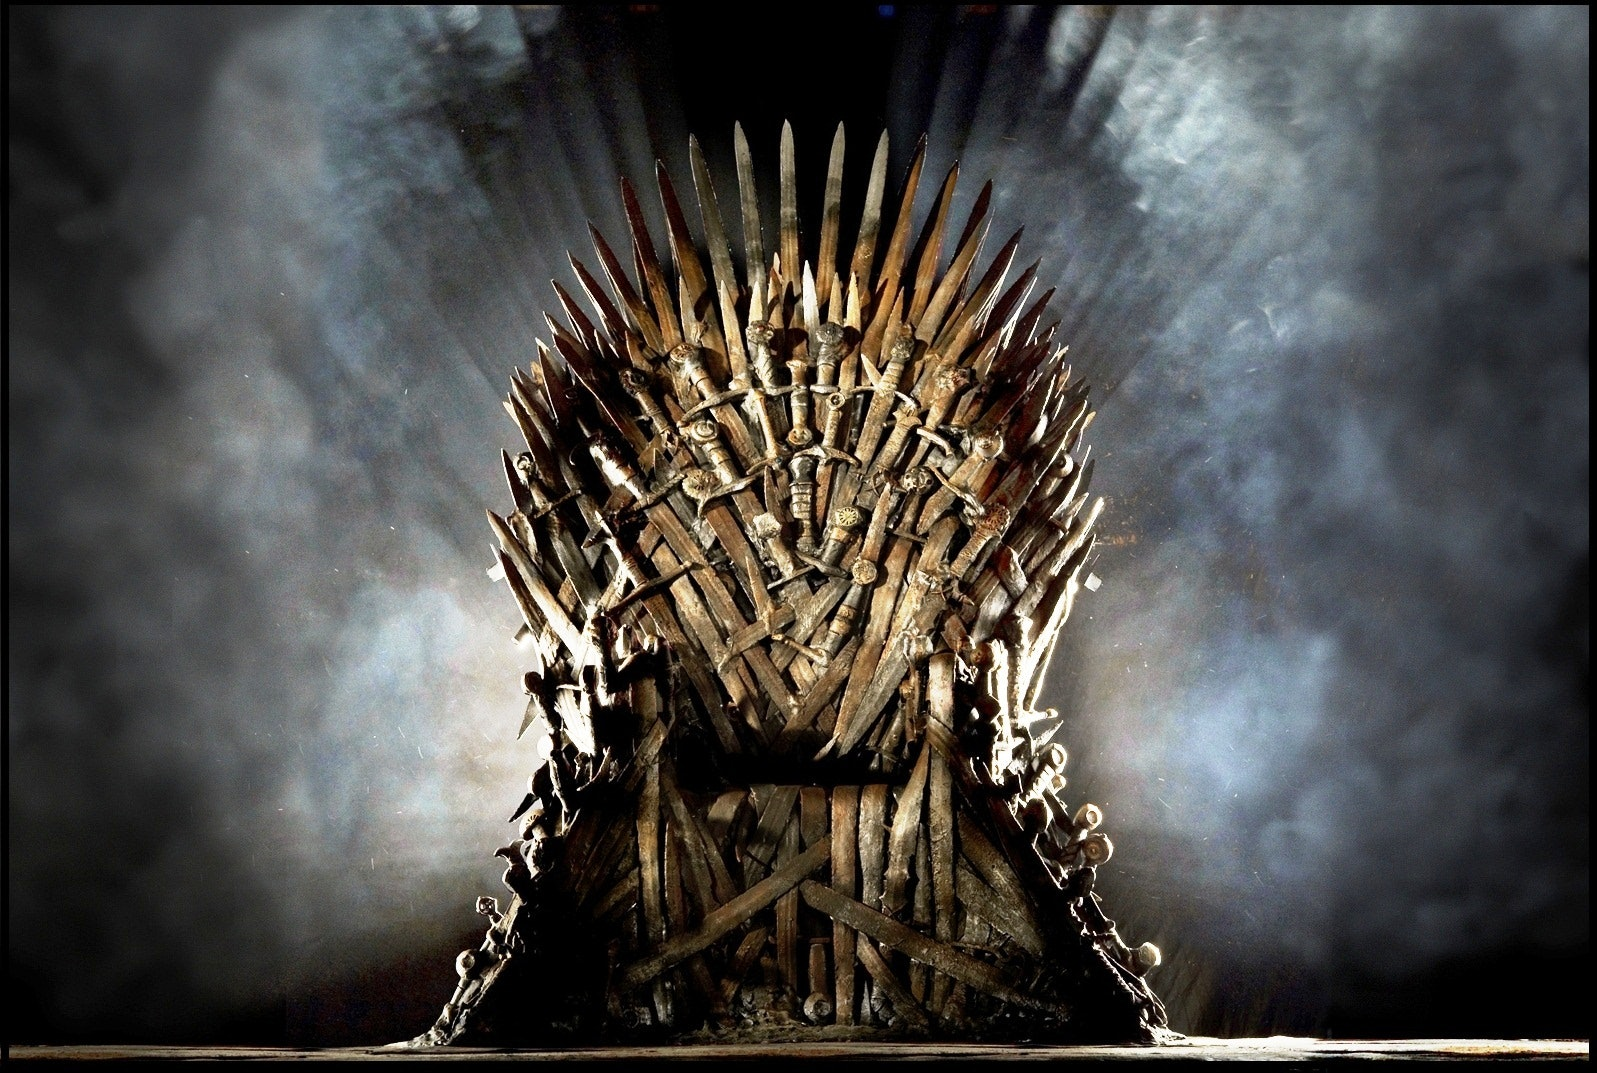 Game Of Thrones Fan Theories Try To Predict Who Will Win The Iron Throne There Are Some Interesting Ideas